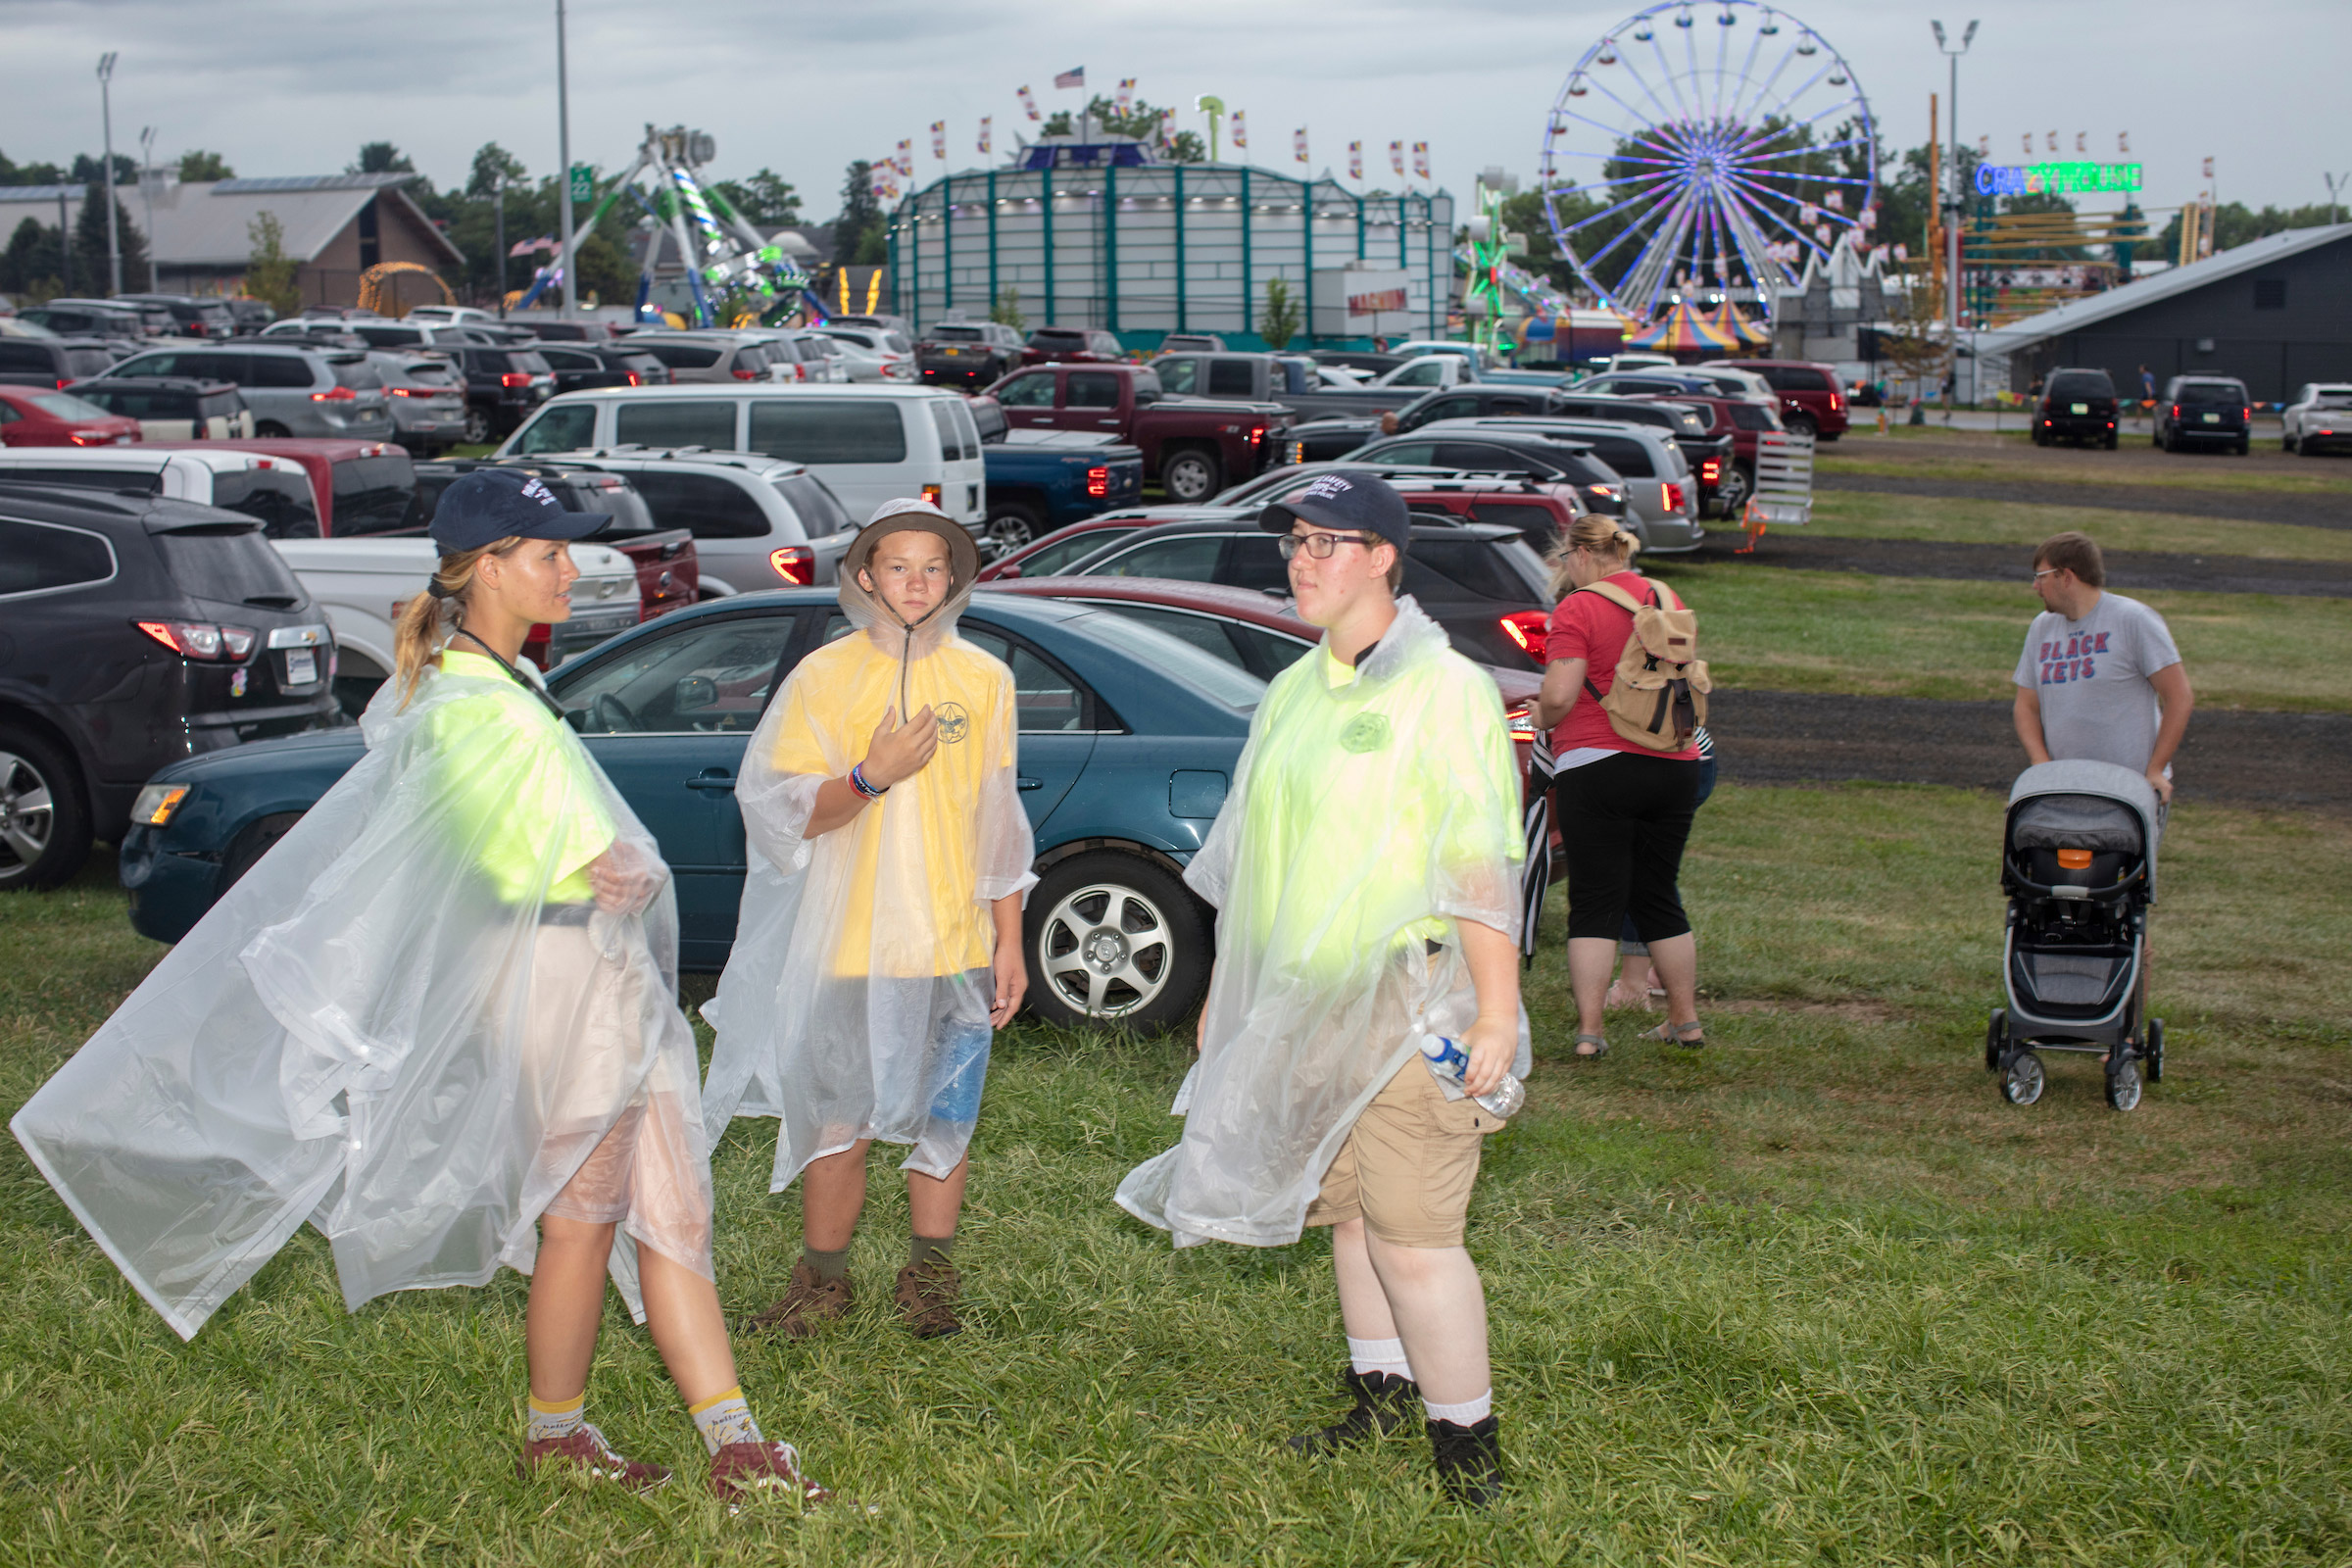 Parking attendants wait for cars at the Iowa State Fair on Aug. 11.